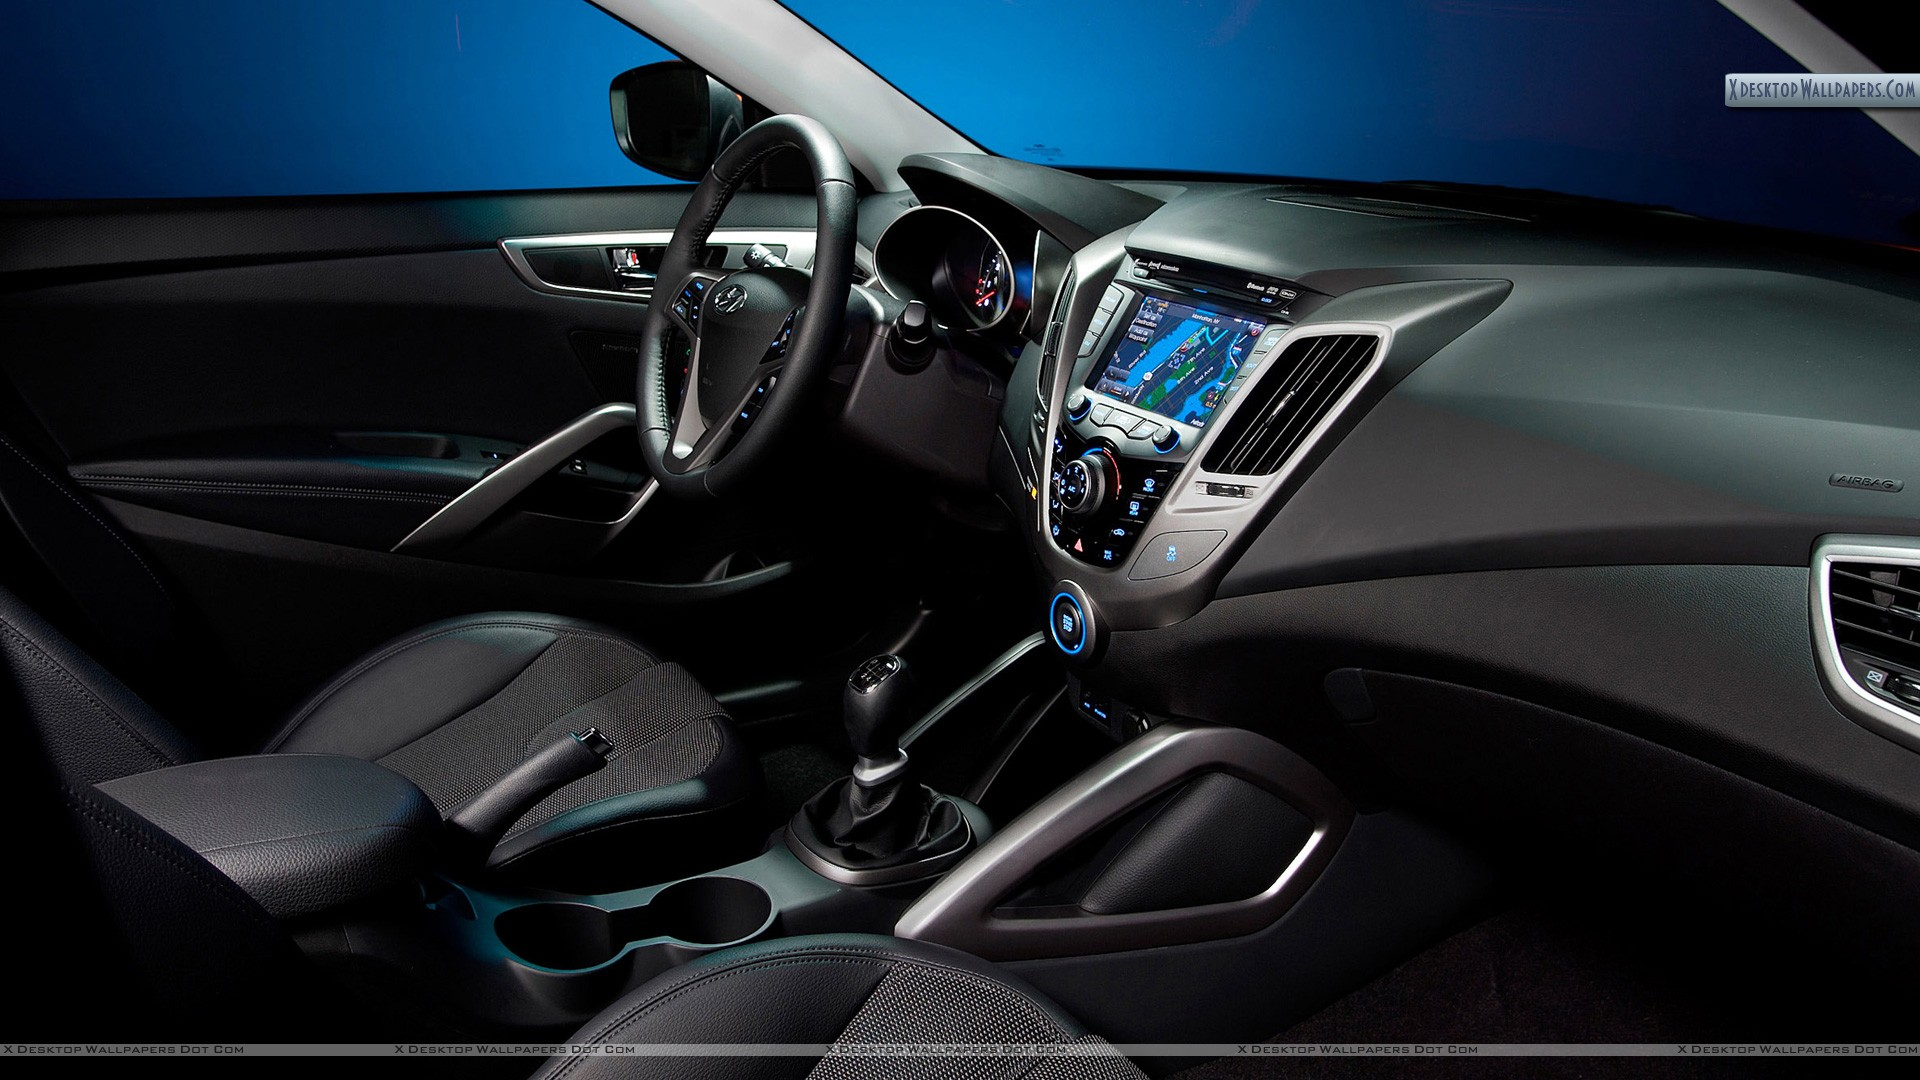 Hyundai Veloster Interior Download 01 Dec 2015 View. You ...